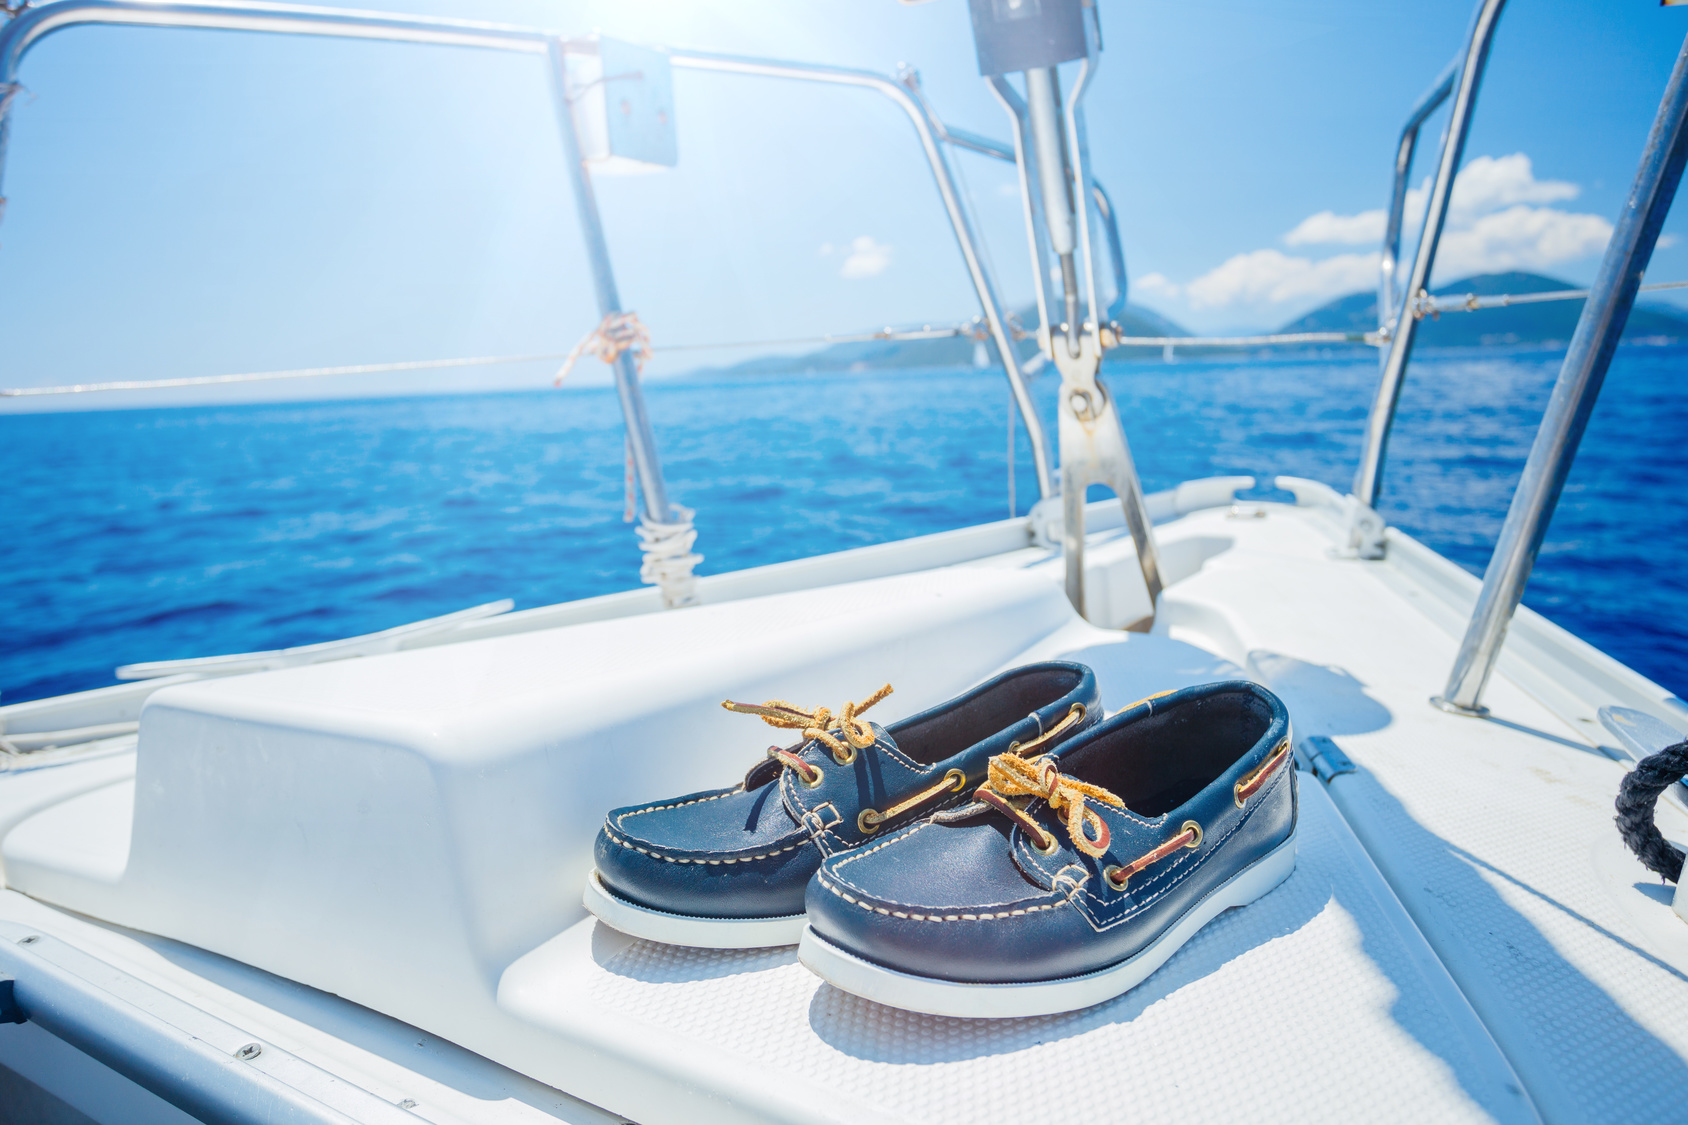 Best Shoes & Boots for Sailing- Reviewed & Compared